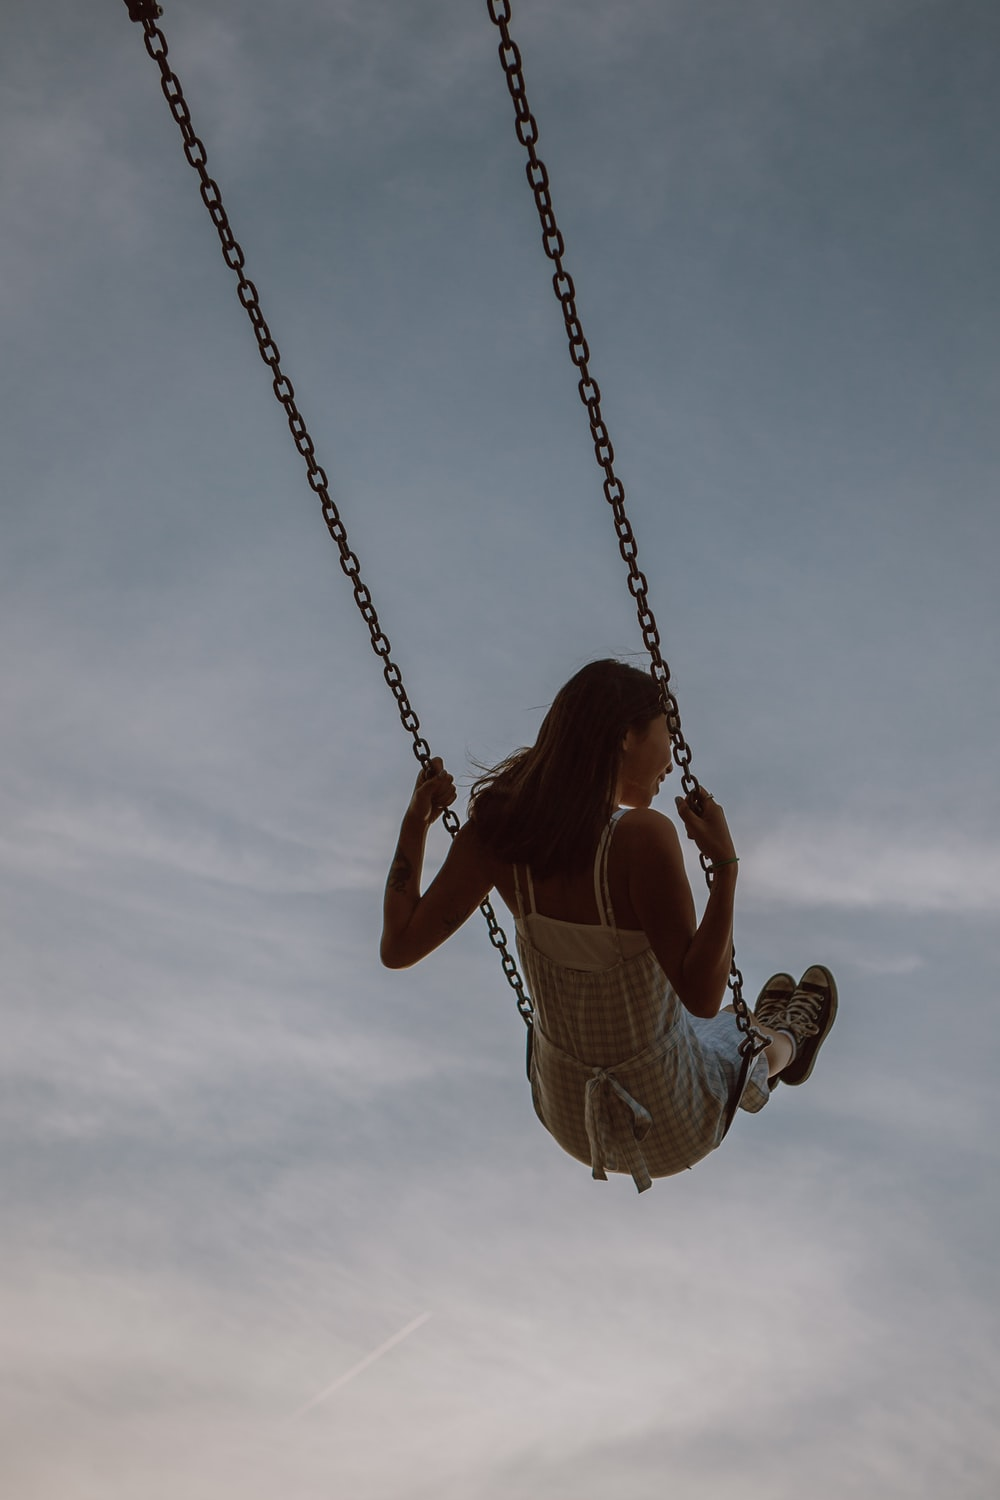 woman in white dress sitting on swing under cloudy sky during daytime